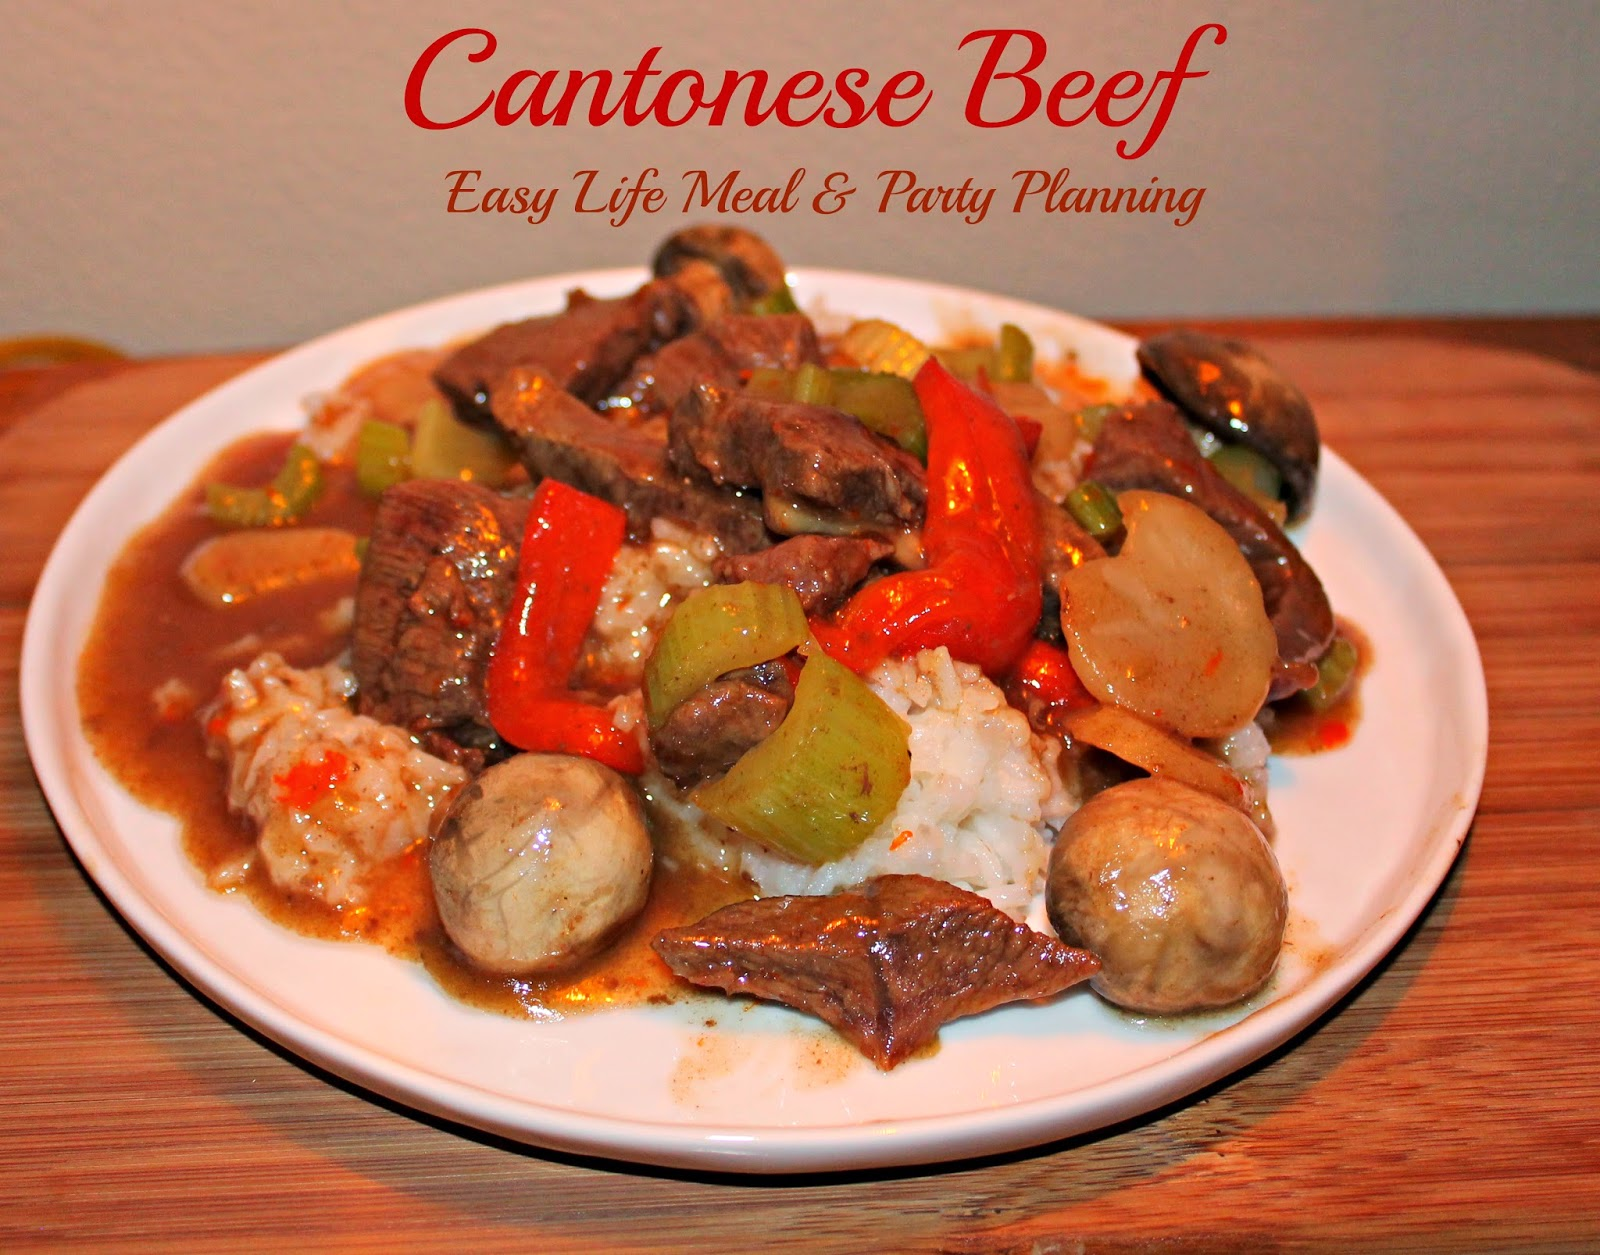 Cantonese Beef - Easy Life Meal & Party Planning - skillet meal simple to make containing spicy, sweet and sour flavors